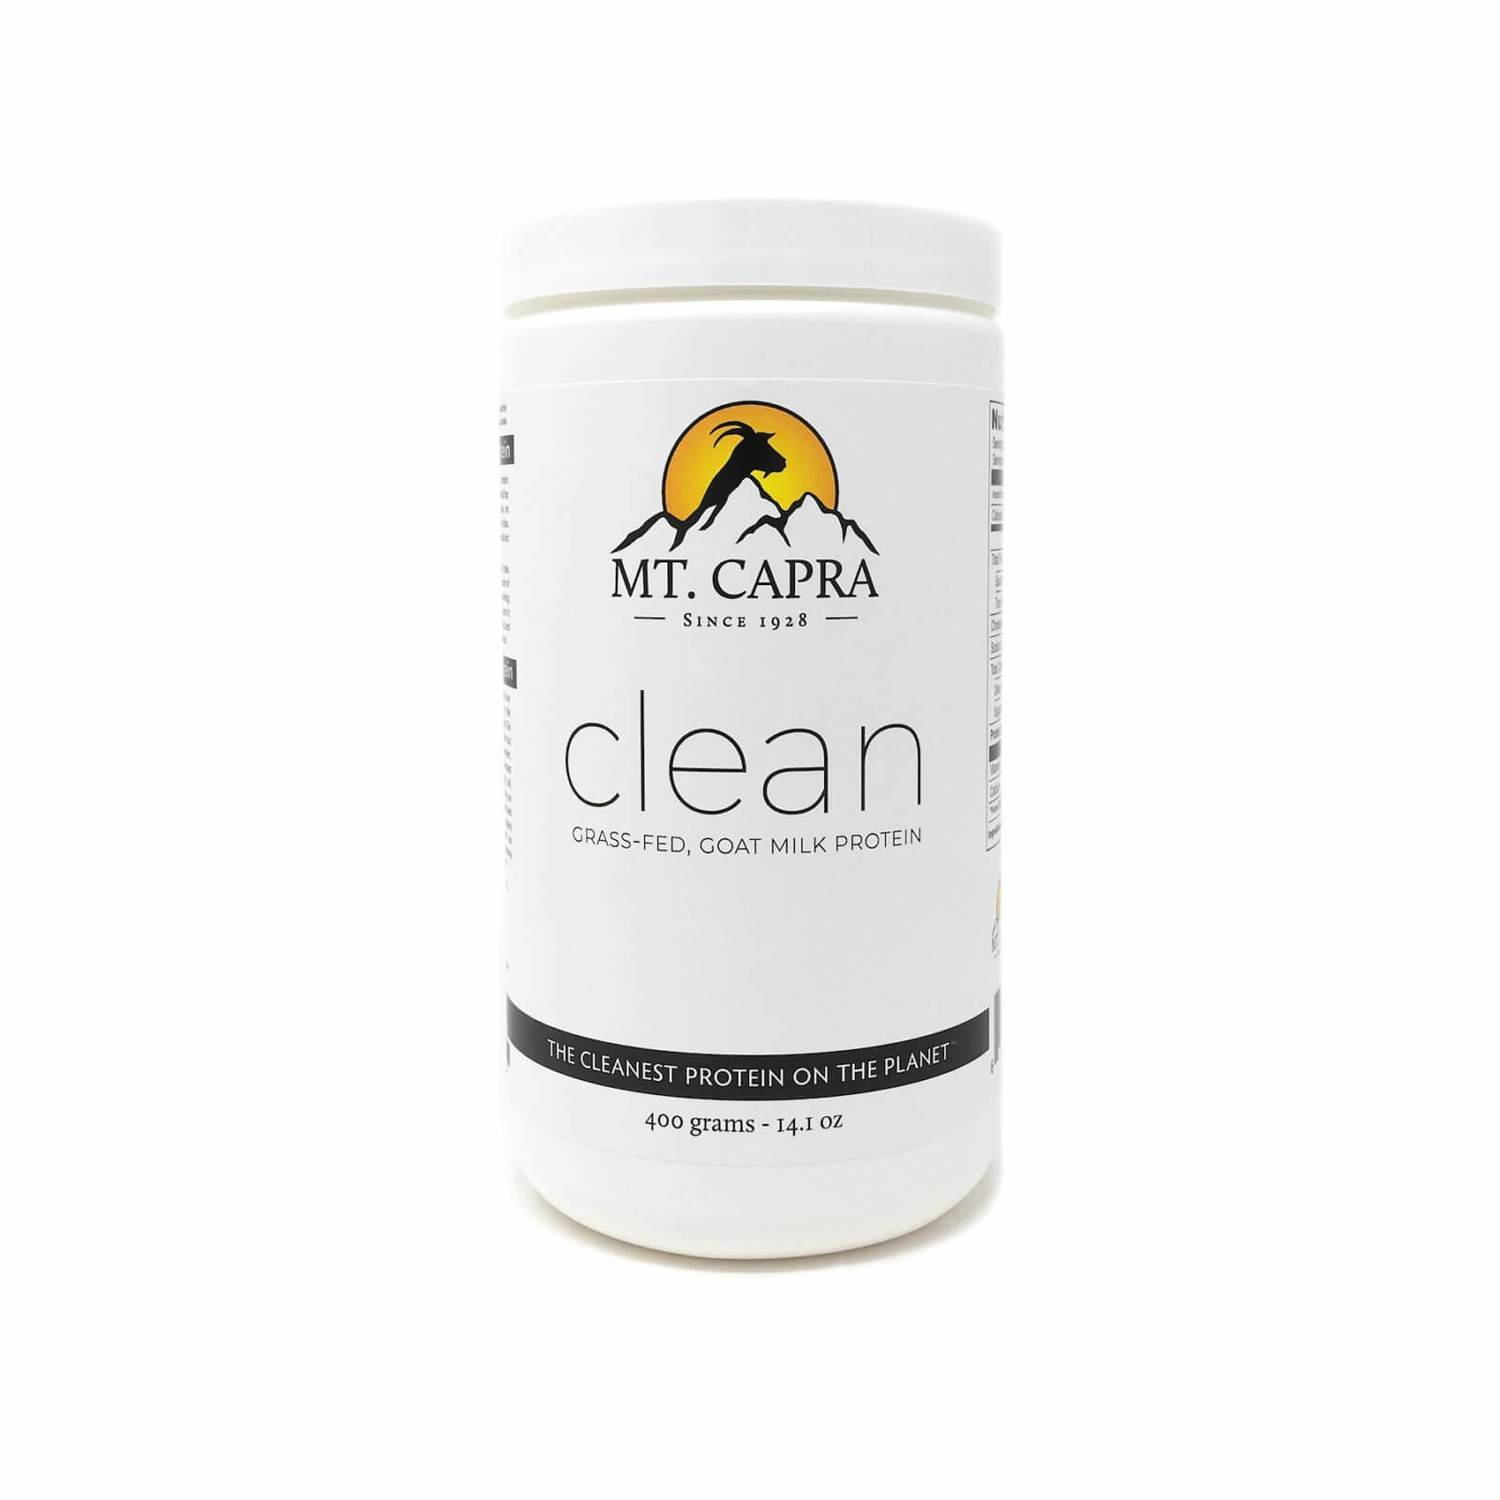 Mt. Capra Clean Grass Fed Goat Milk Protein